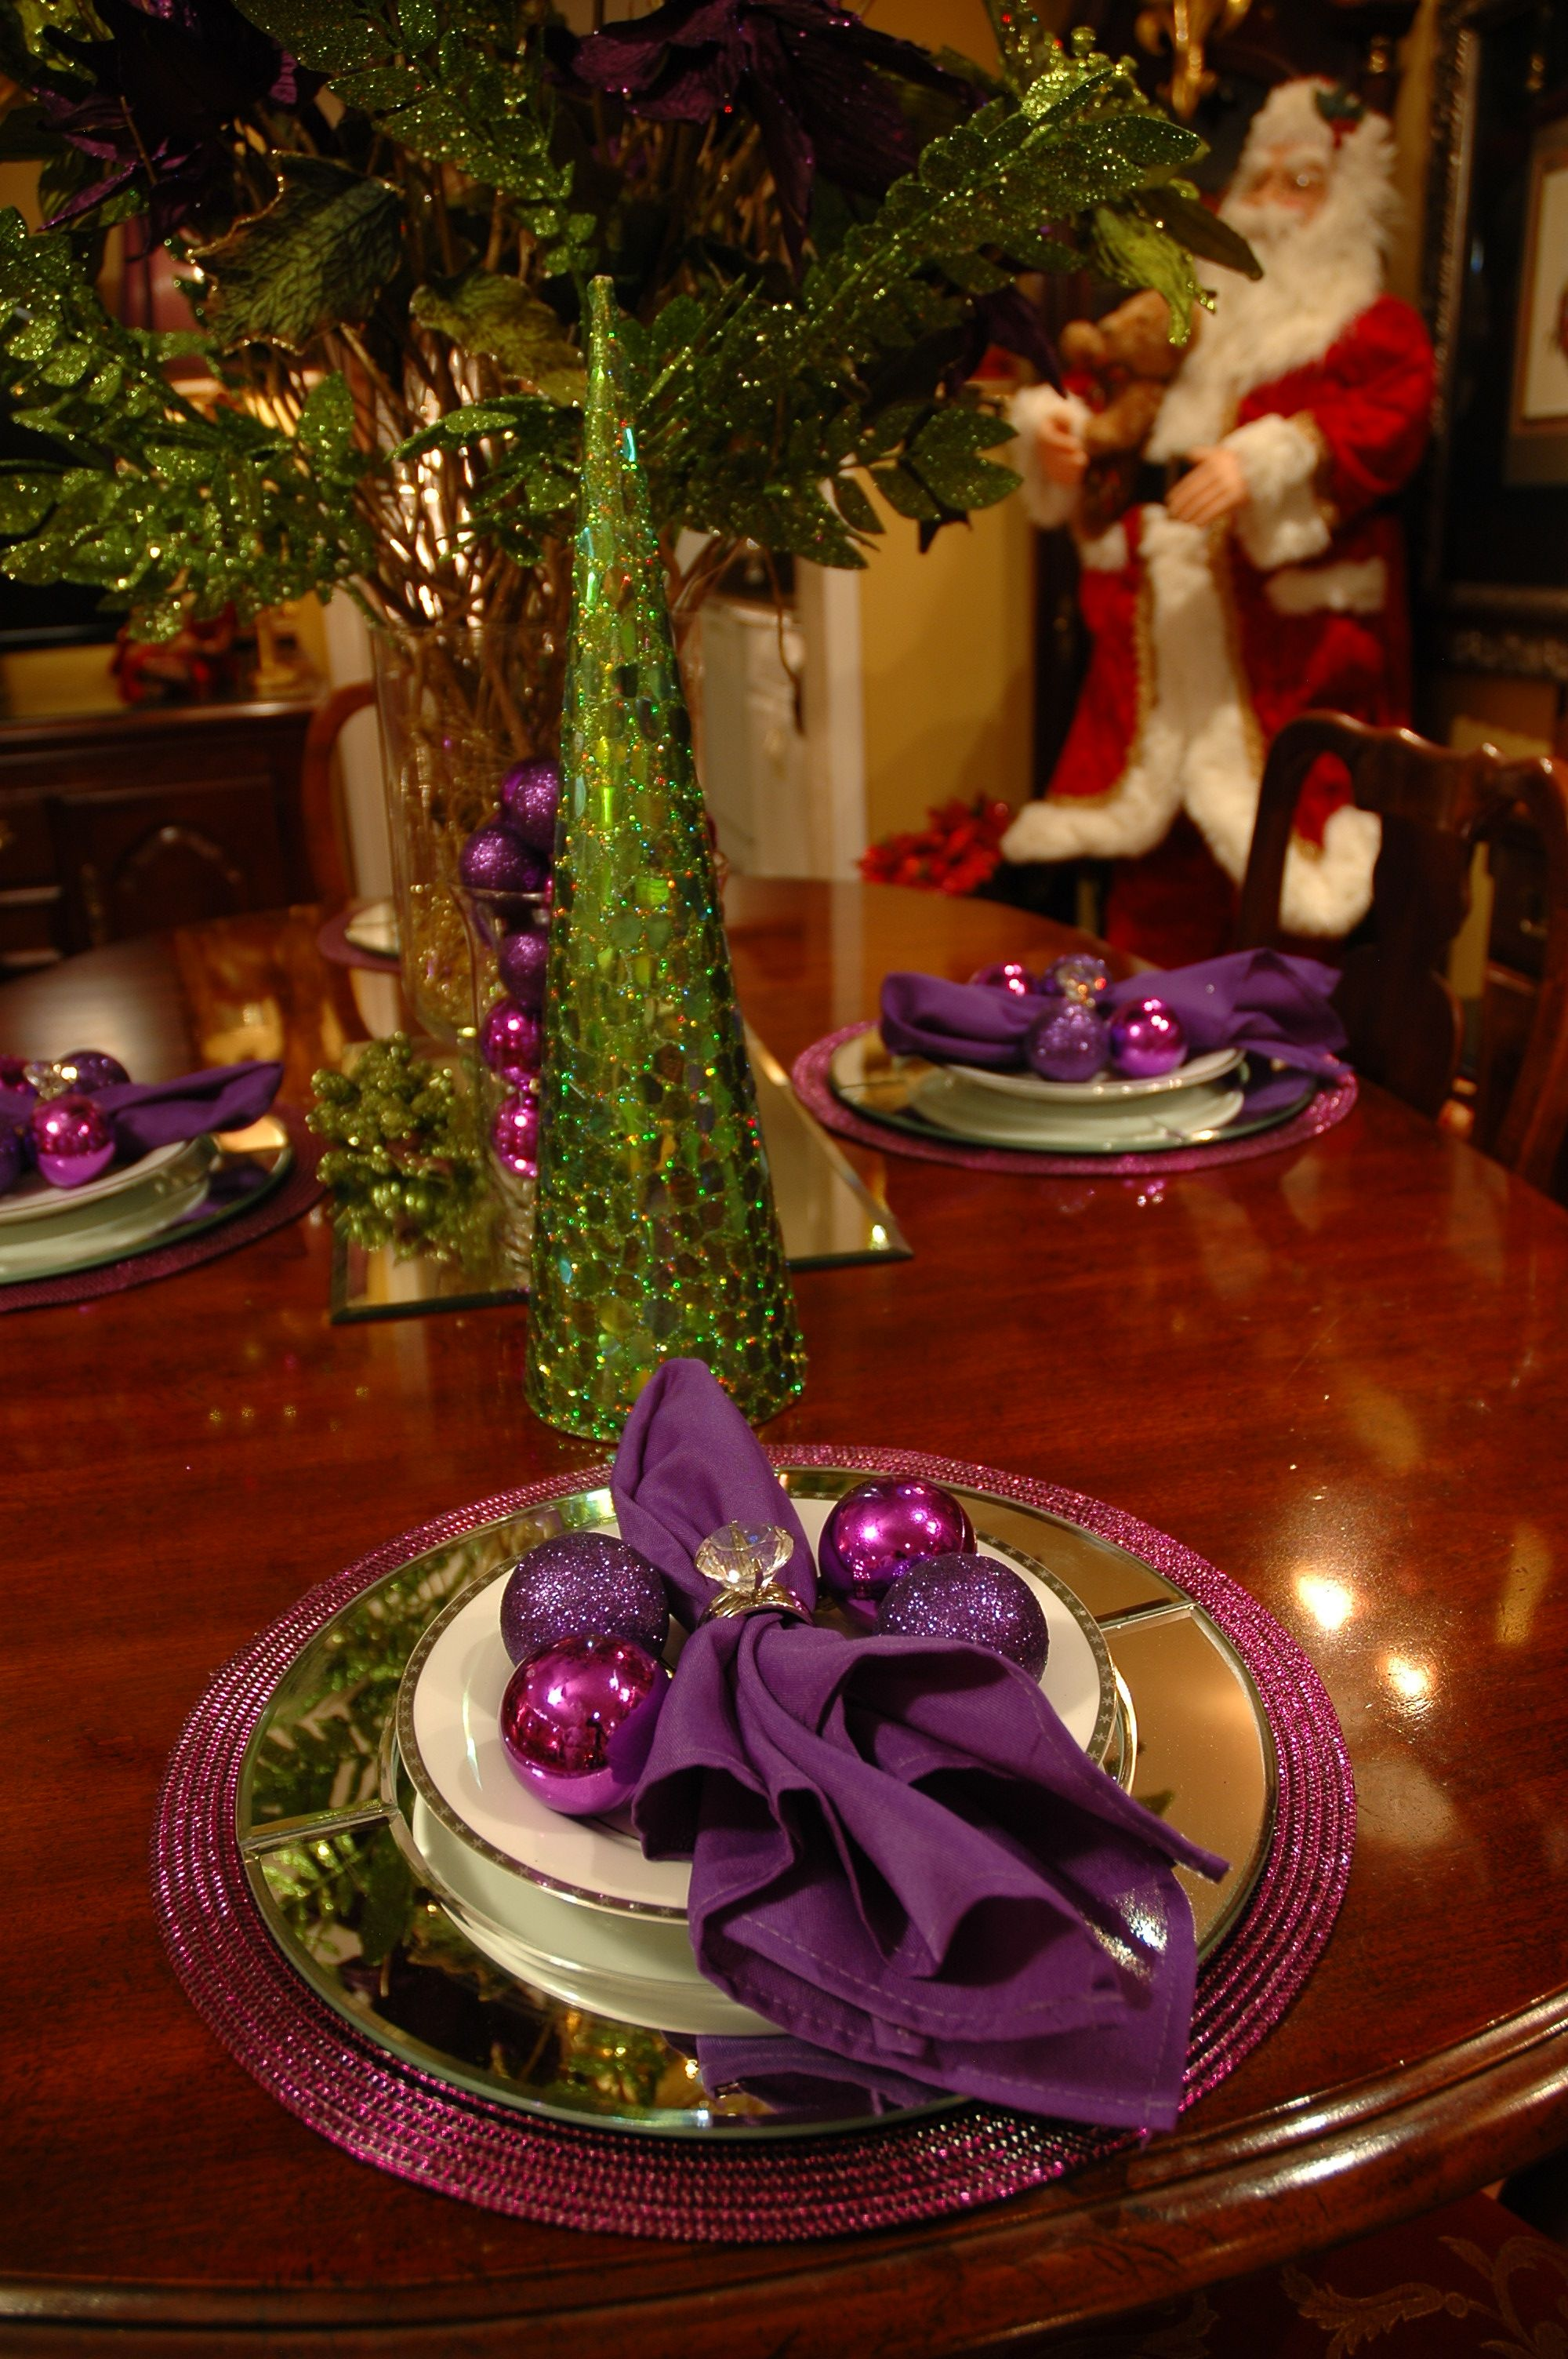 Pin By Dk Daniels On Tablescapes Table Settings Classy Christmas Christmas Table Decorations Christmas Dining Table